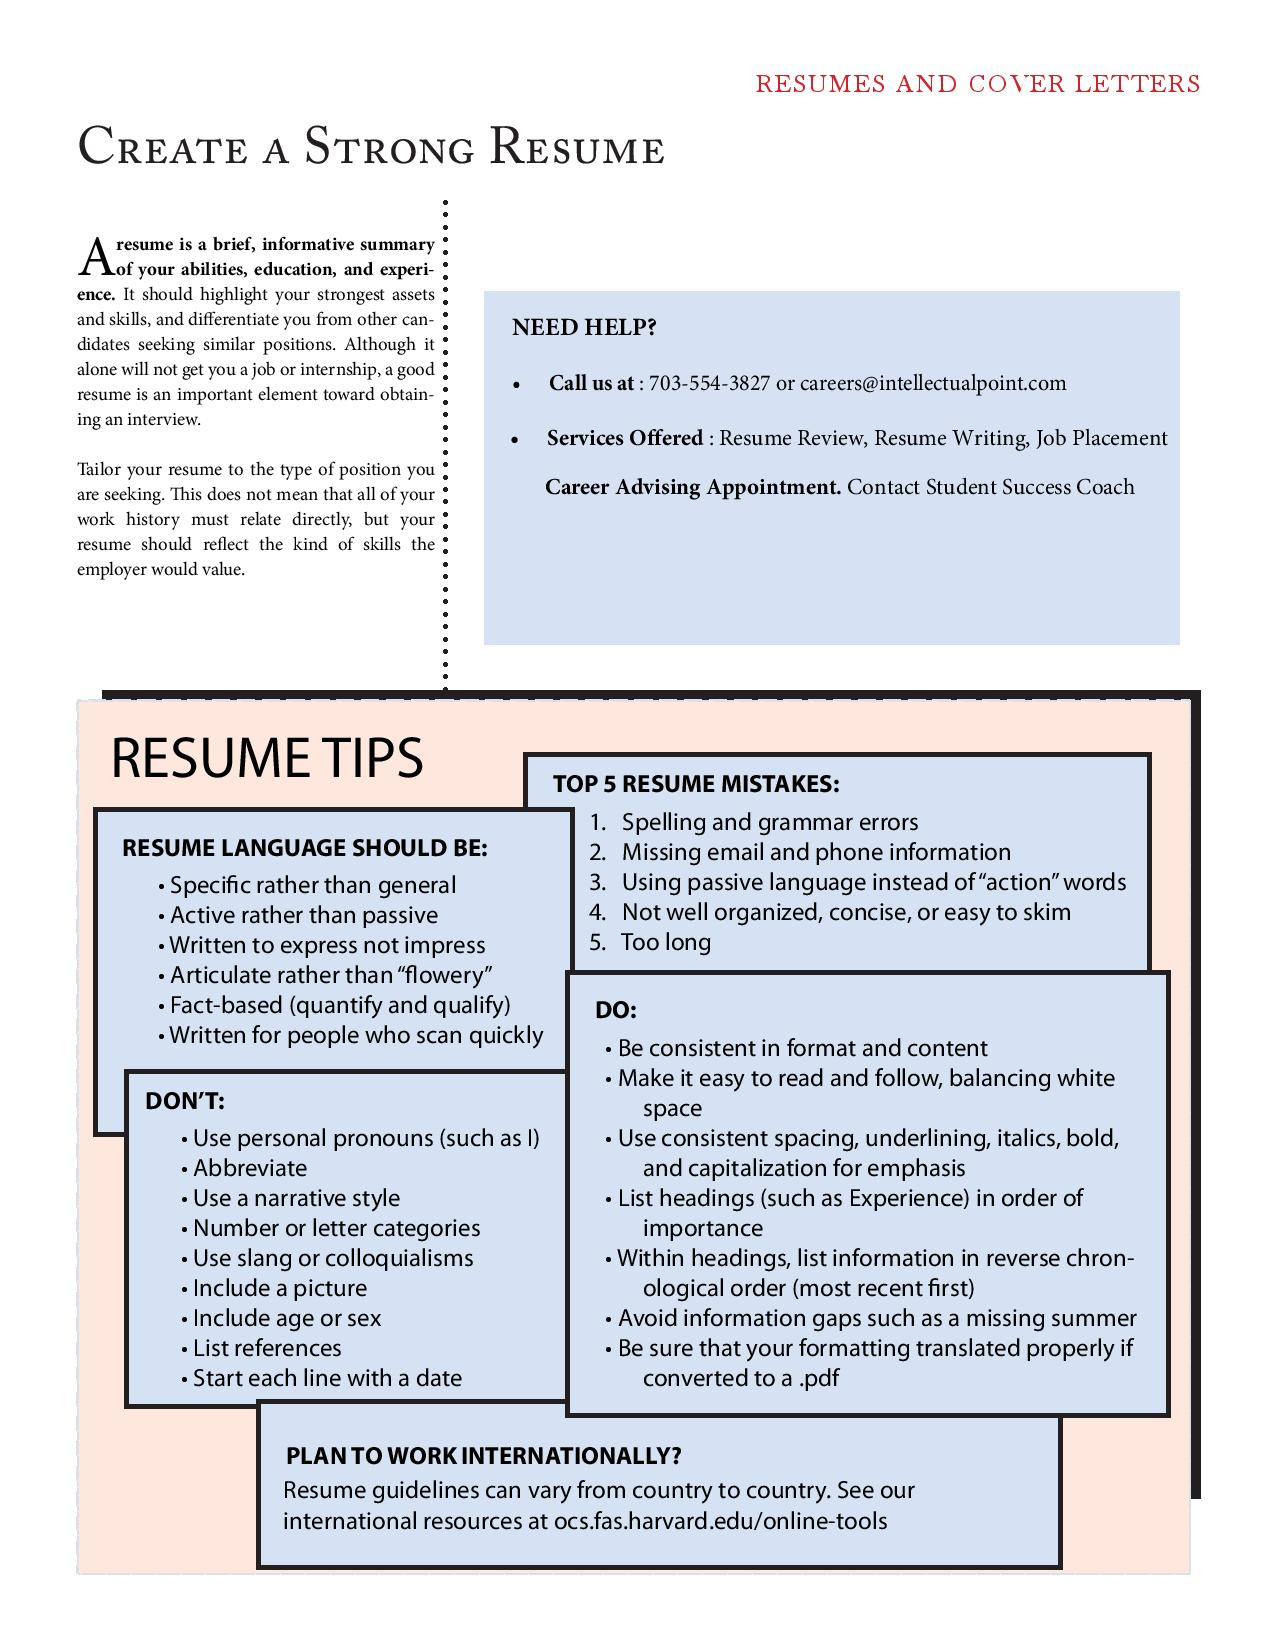 sample inspiring resumes intellectual point david careers resume review cover letters Resume David Careers Resume Review